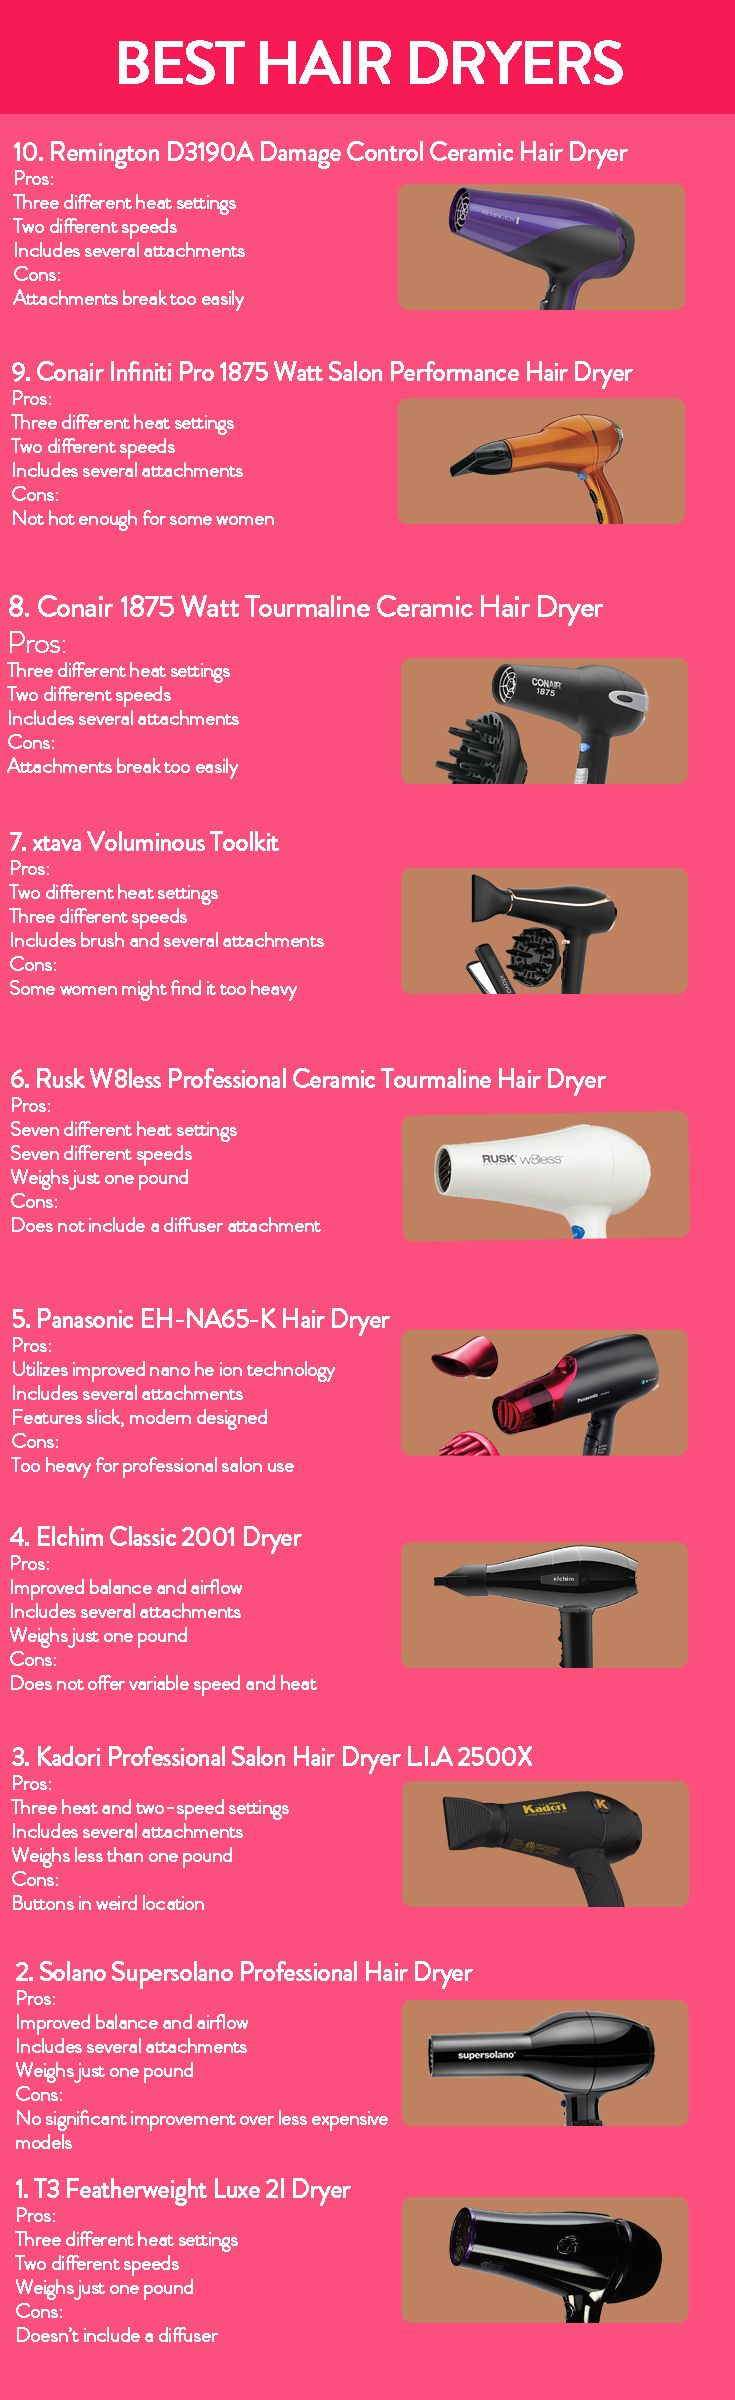 Blow dryers are simply indispensable, but they are not all made equal. Getting a cheap hair dryer – or even an expensive one that doesn't work right – can make drying your hair a lot harder and more time consuming than it has to be. Buying a quality hair dryer will go a long way towards speeding up the process. Check our hair dryer reviews!